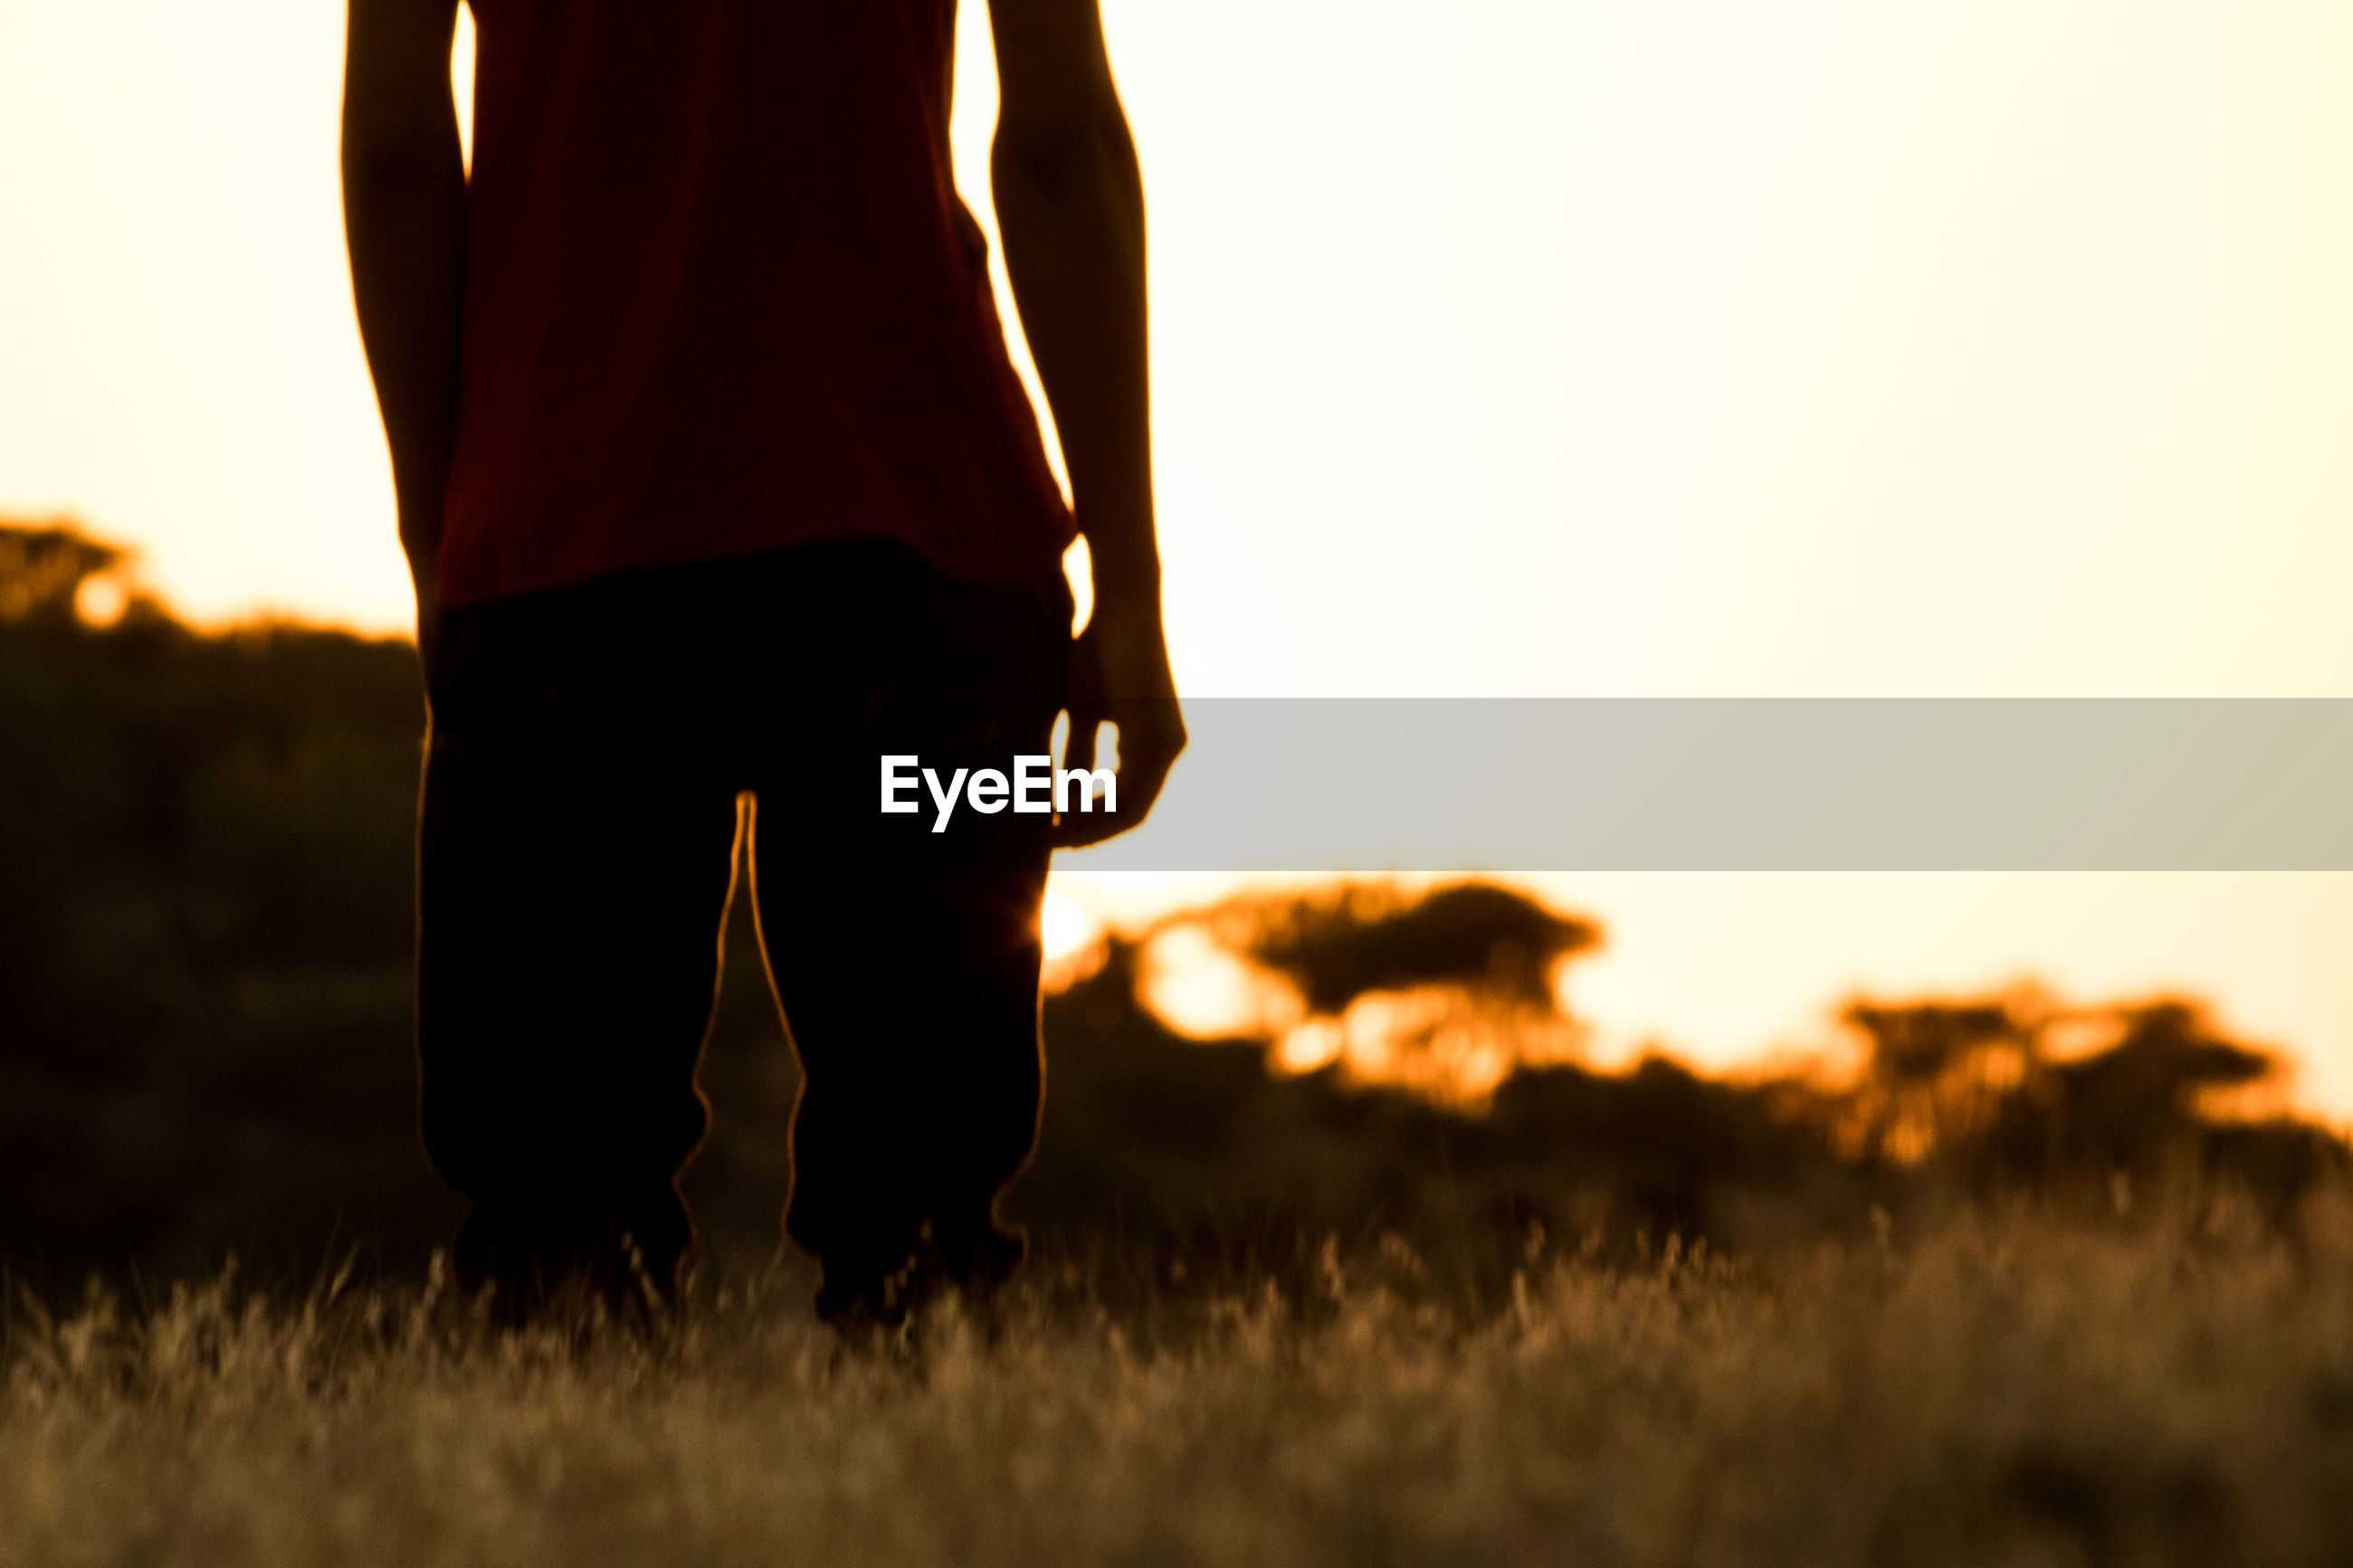 Midsection of man standing on field against sky during sunset